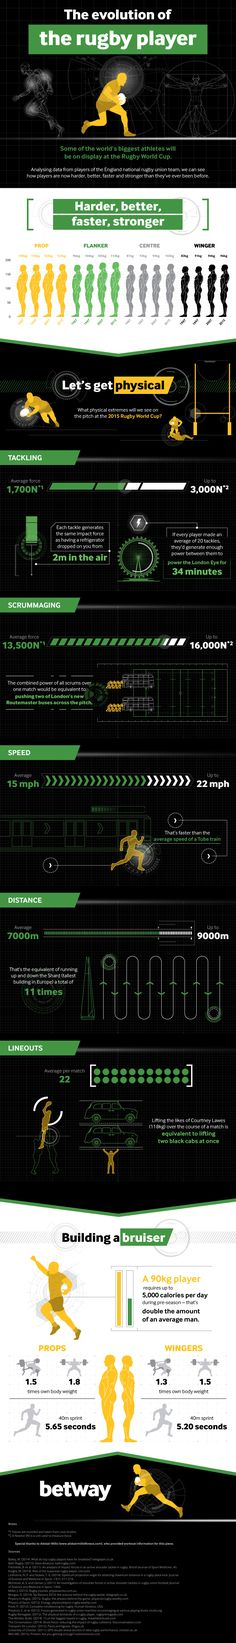 The Evolution of the Rugby Player #infographic #Sports #Rugby